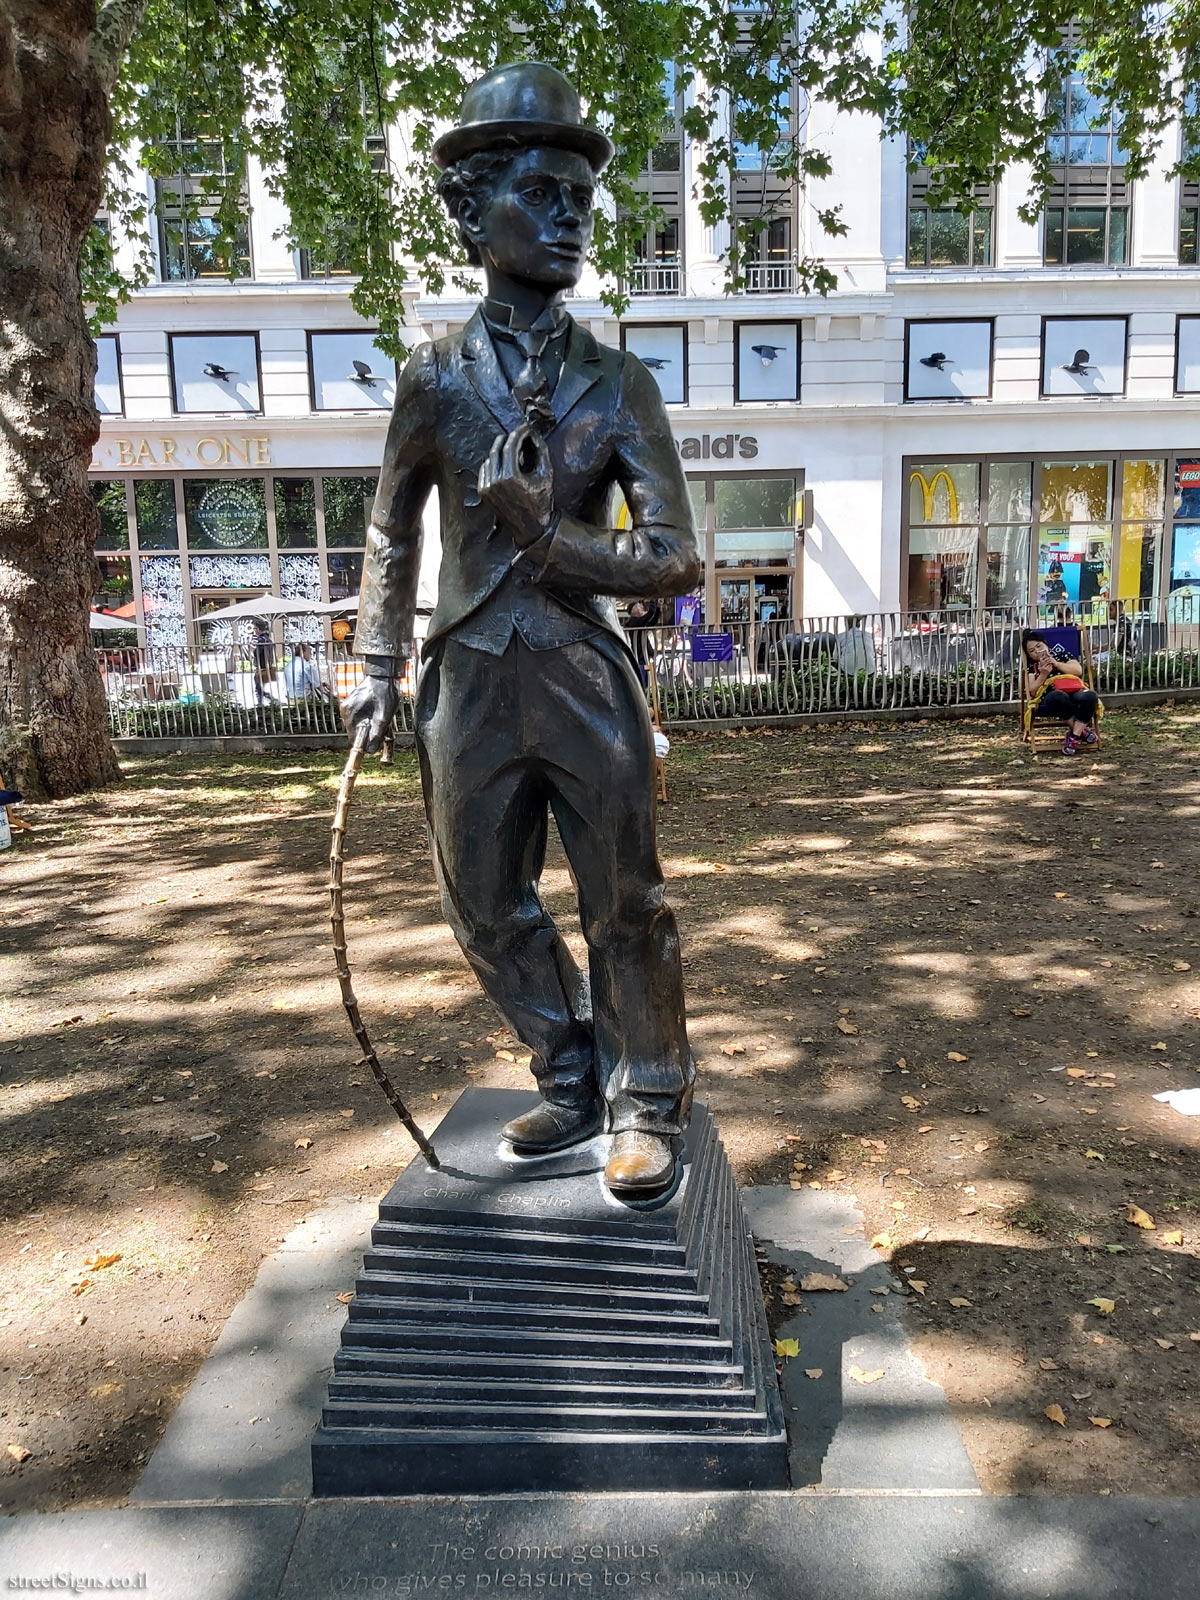 London - Leicester Square - Statue of Charlie Chaplin